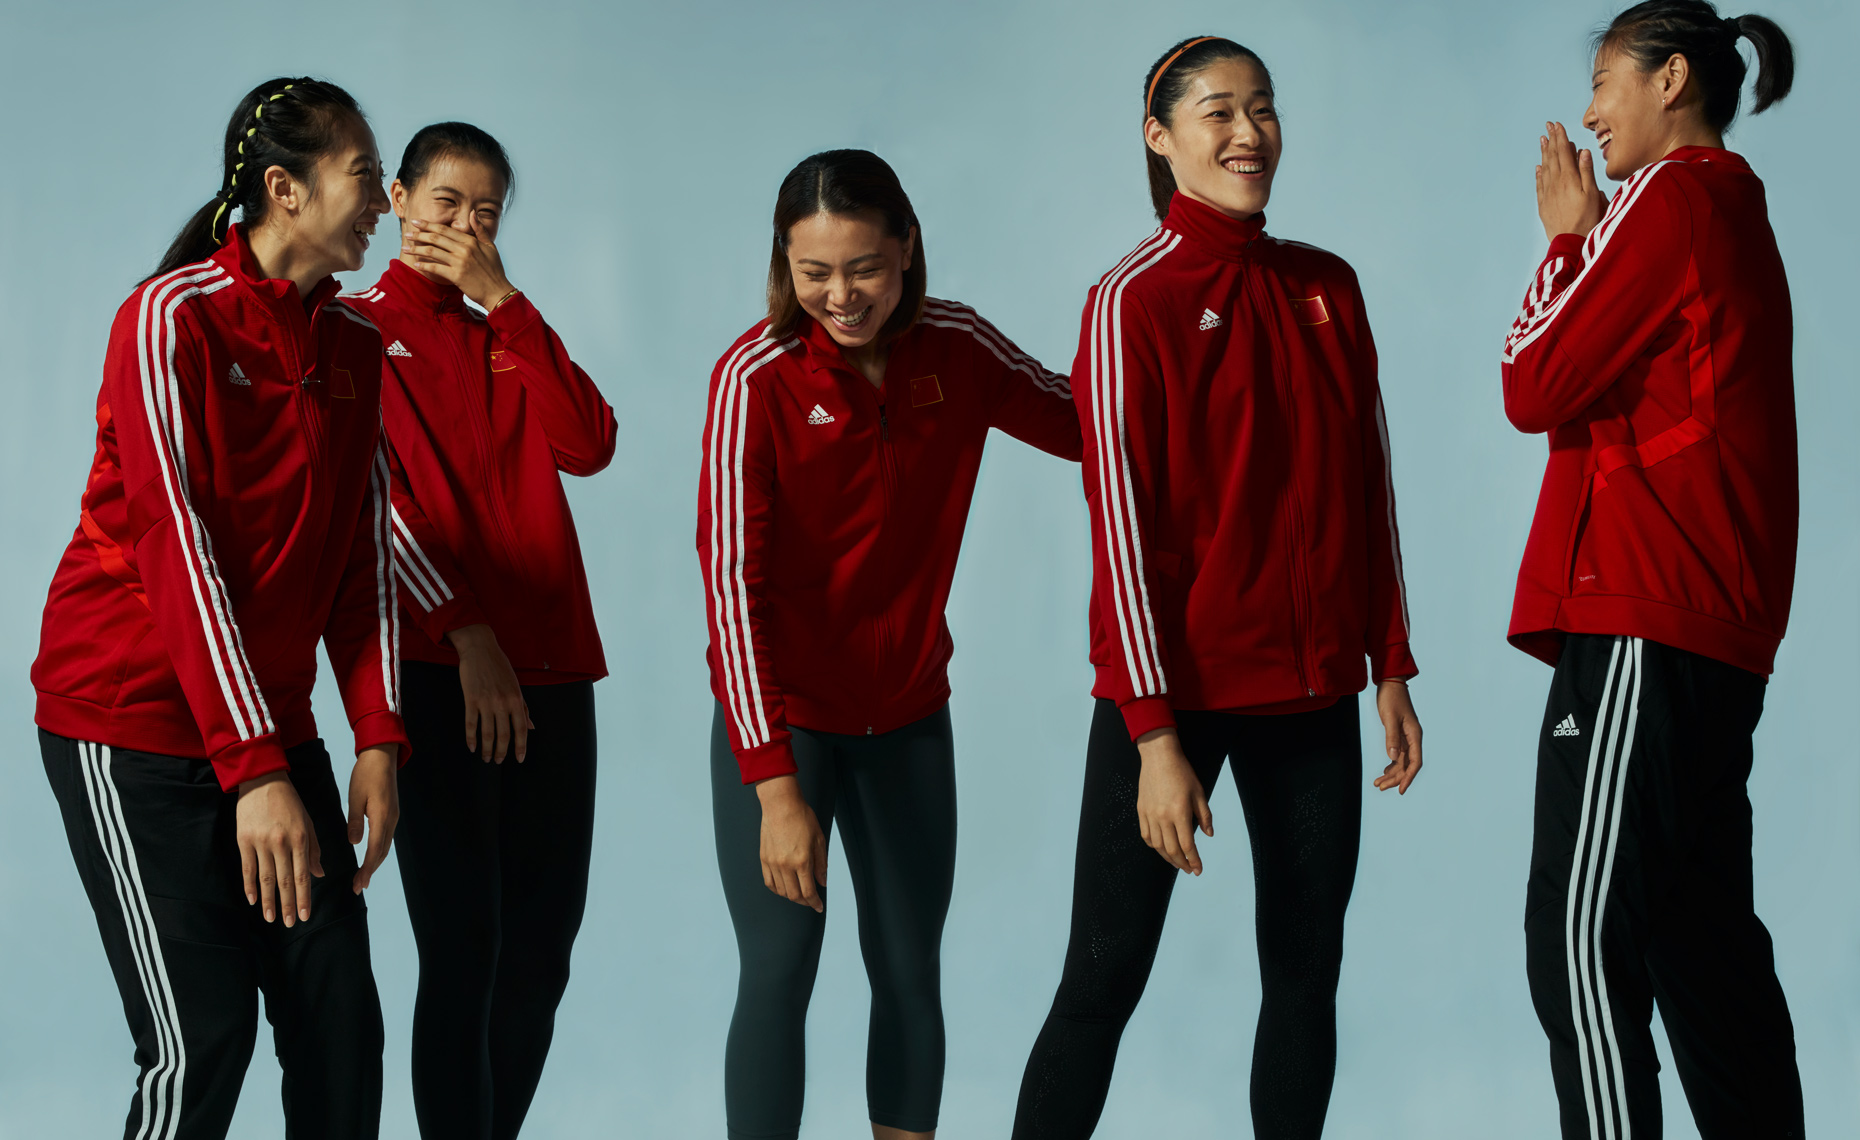 20190806_Adidas-70th-Anniversary-Portrait-Shoot_0959v1